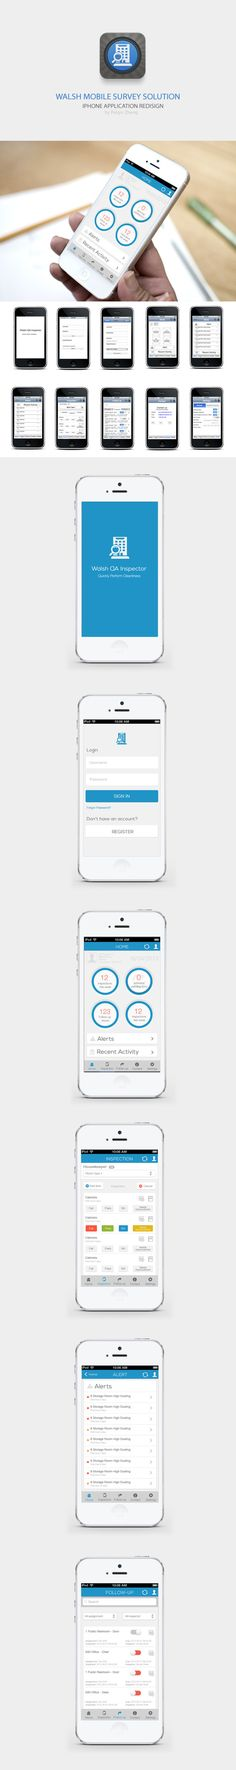 Inspector App for Iphone Ios7 Style by Pq Z, via Behance | simple II | blue highlight II